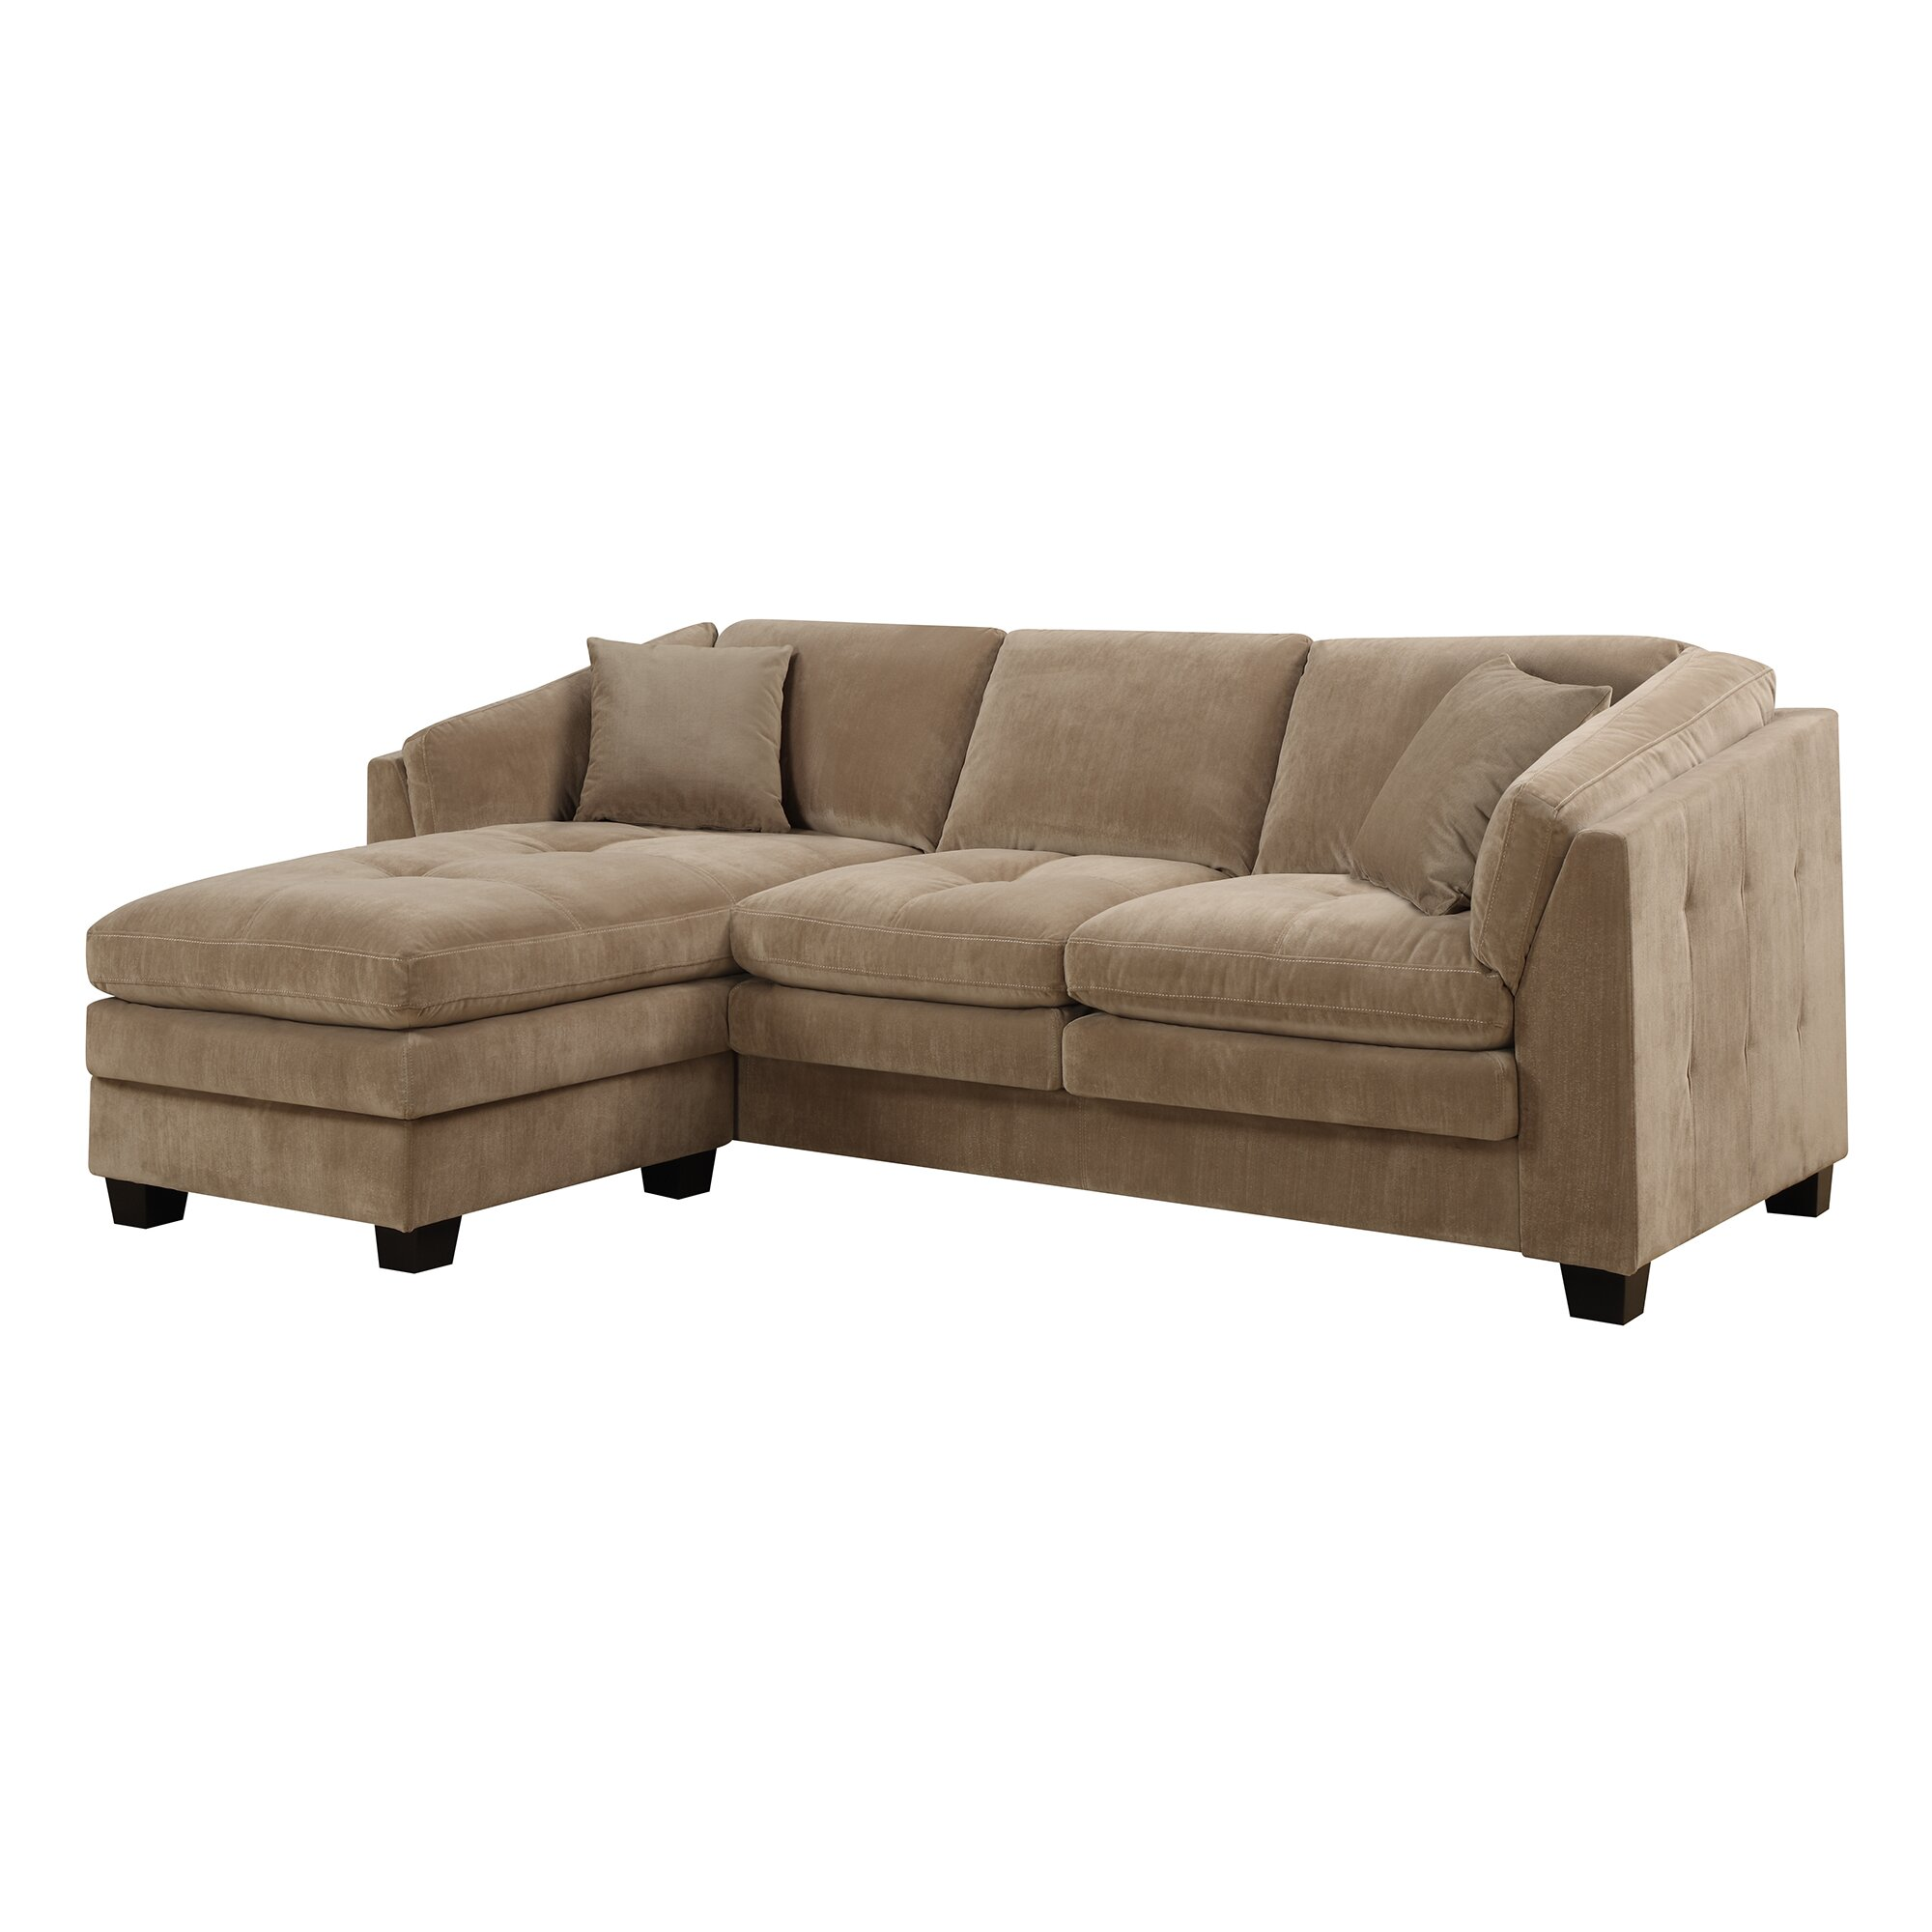 Darby Home Co Modular Sectional & Reviews